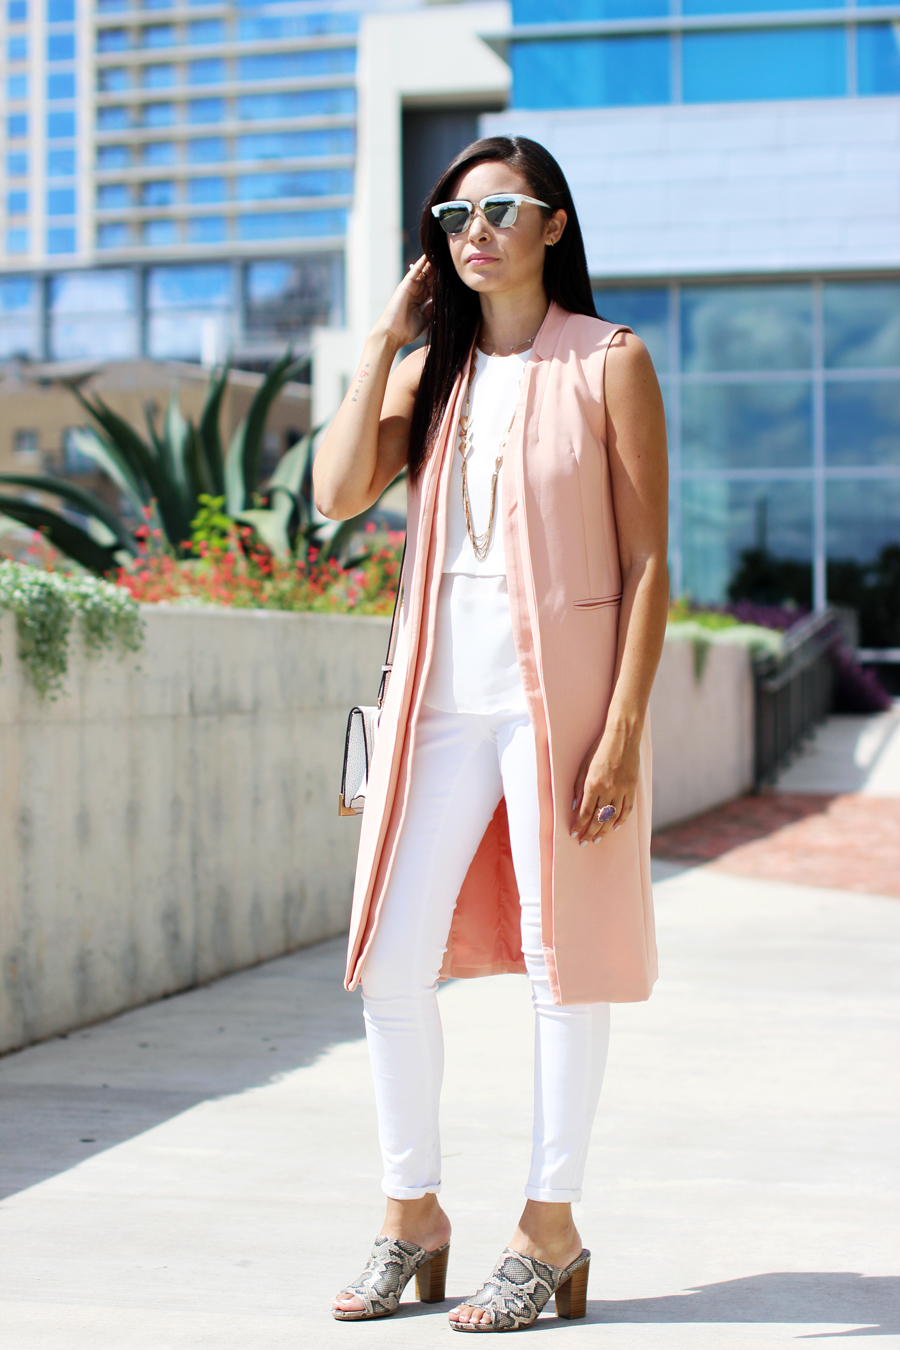 FTT-LILY-JAMES-COLLECTION-PINK-VEST-WHITE-LOOK-MULES-12